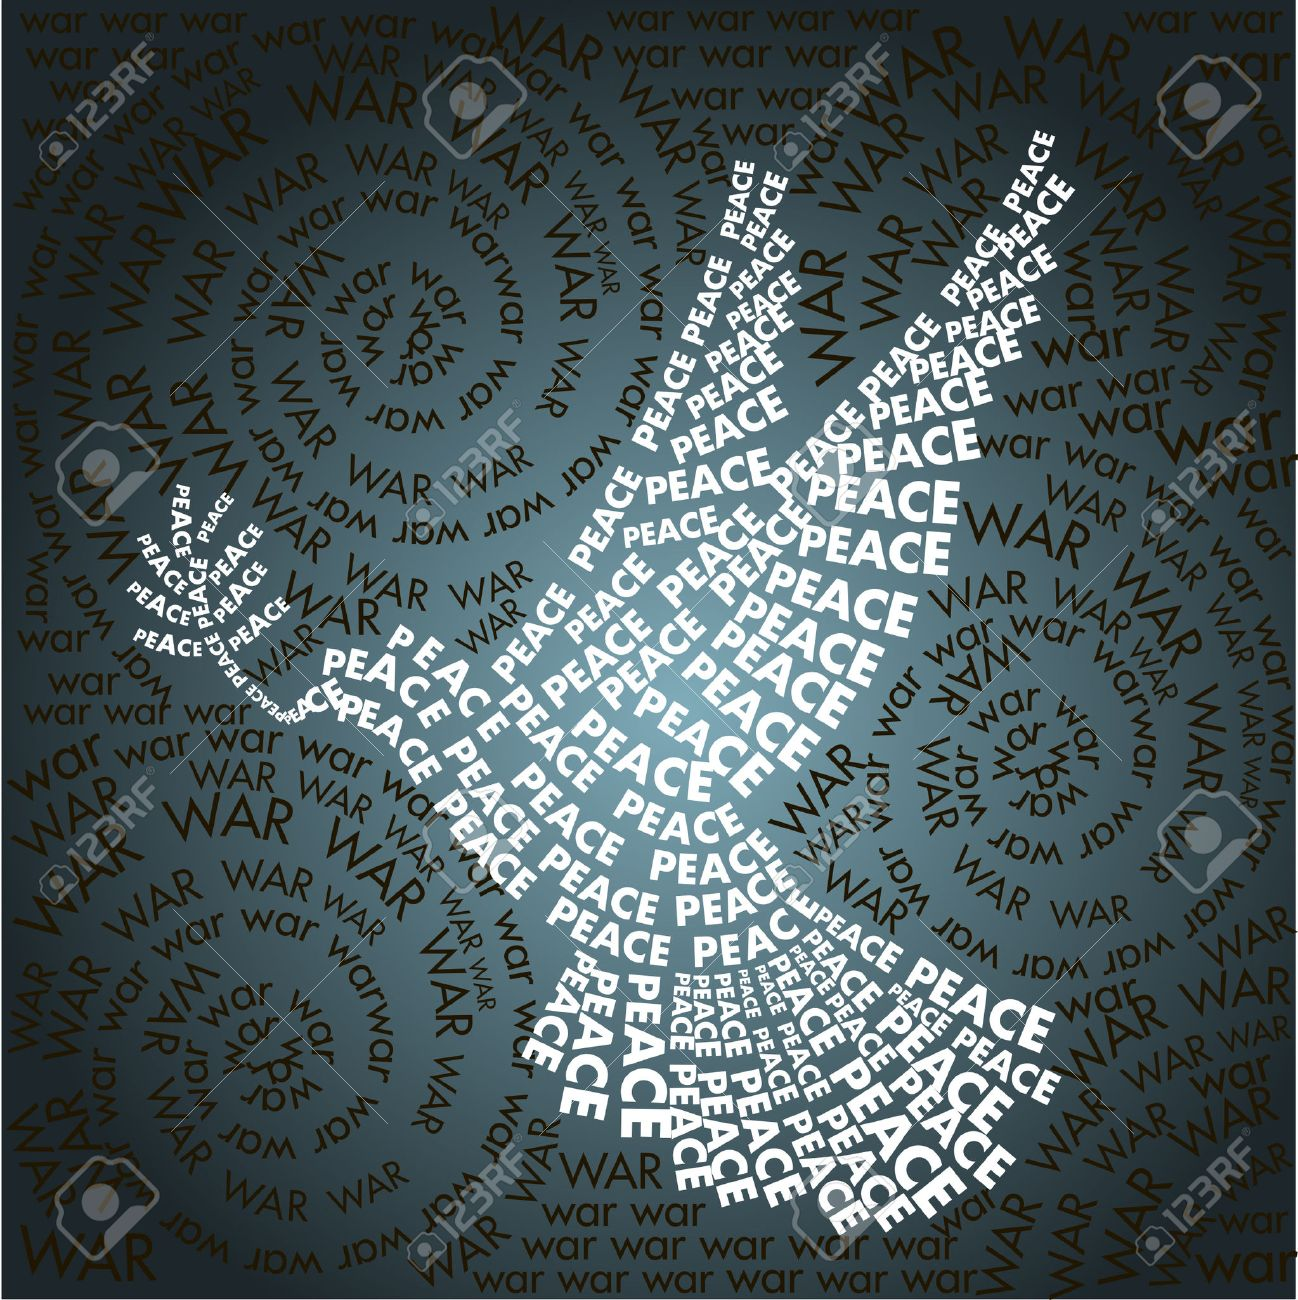 Dove Of Peace In The Words Background Word War Day Related In 1298x1300